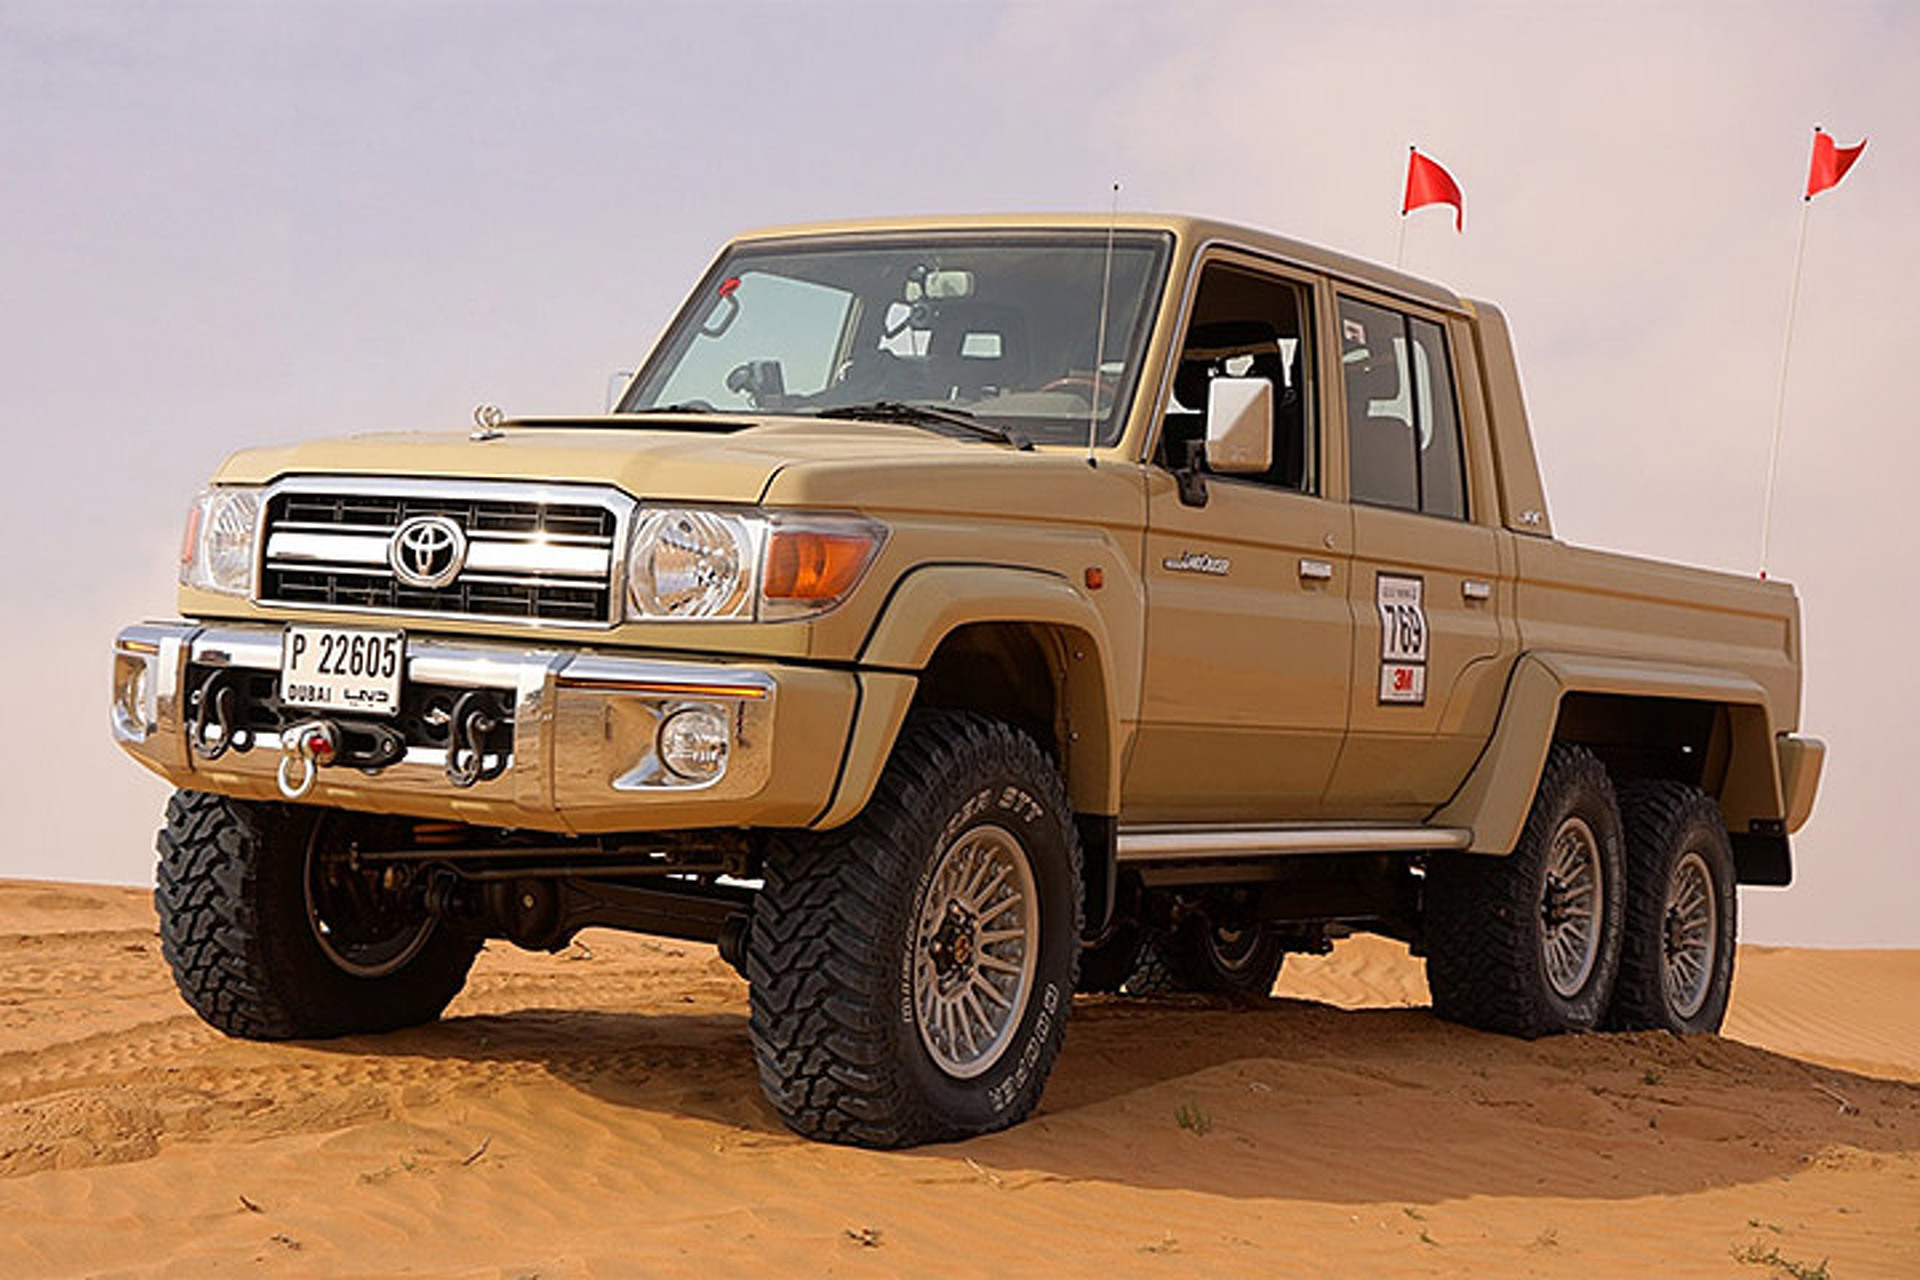 This 6x6 Toyota Land Cruiser Is A Dune Crushing Monster